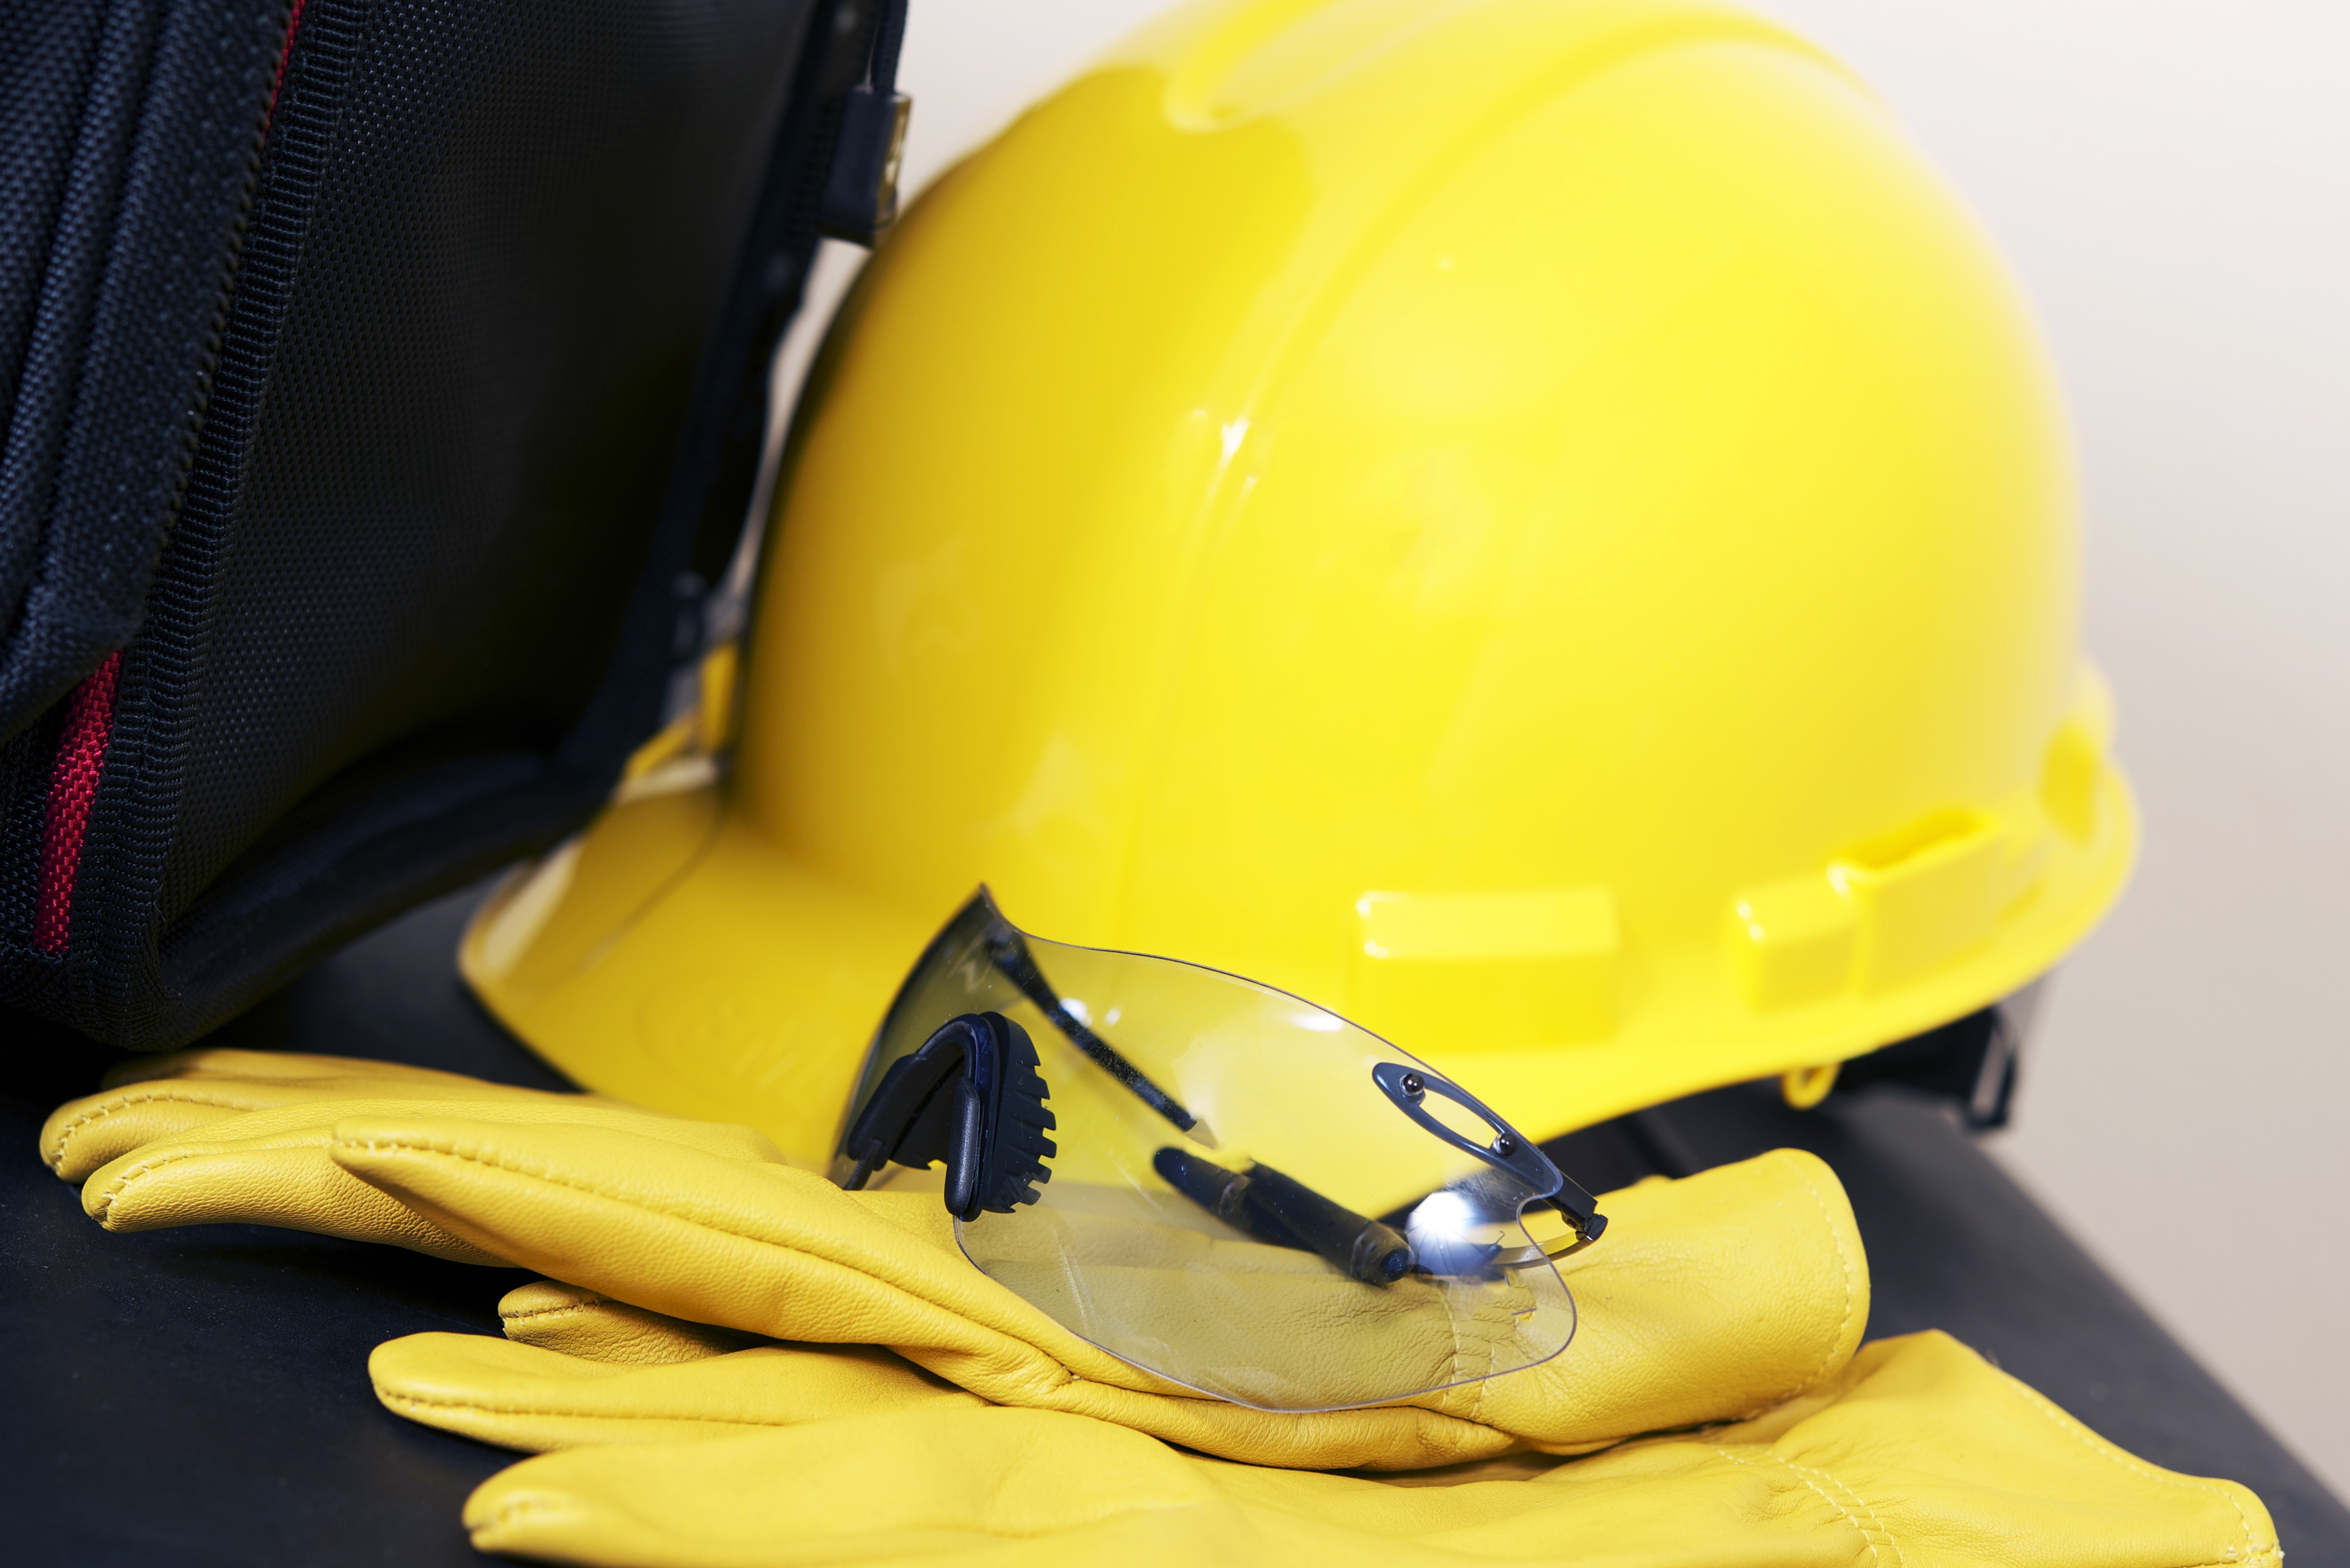 Understanding The OSHA Final Rule On Eye/Face Protection